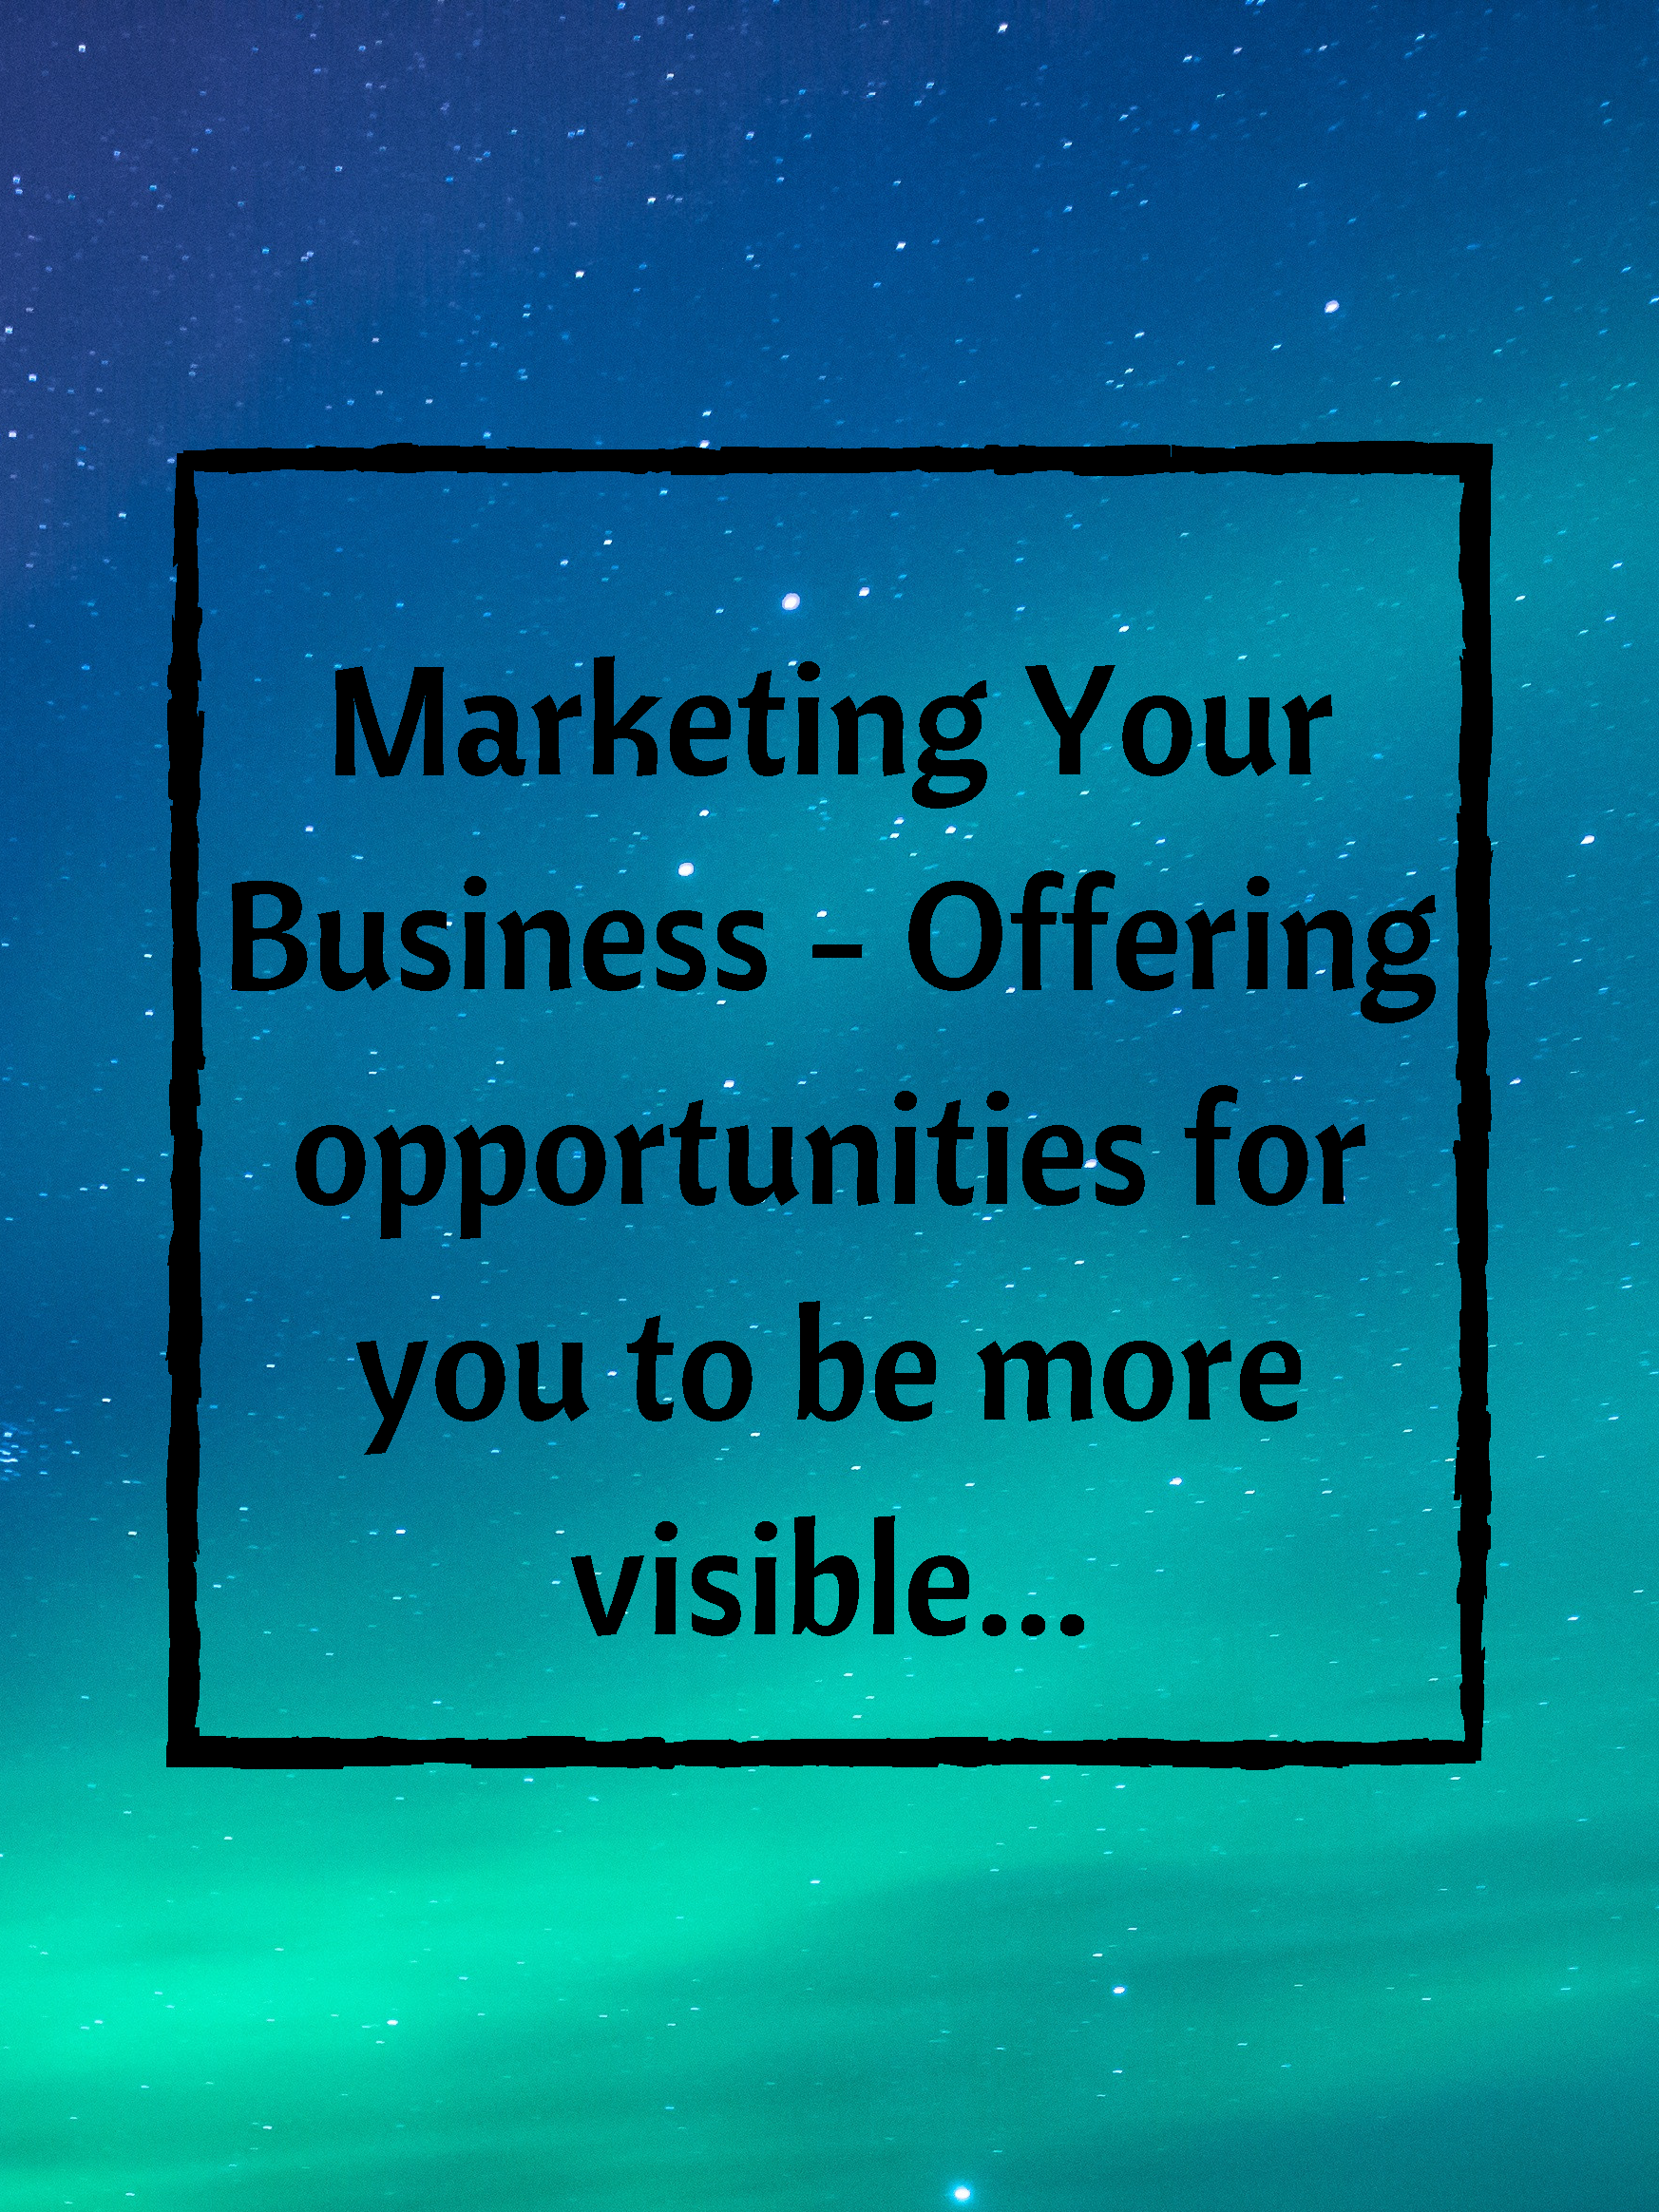 Marketing-Your-Business-Image.png